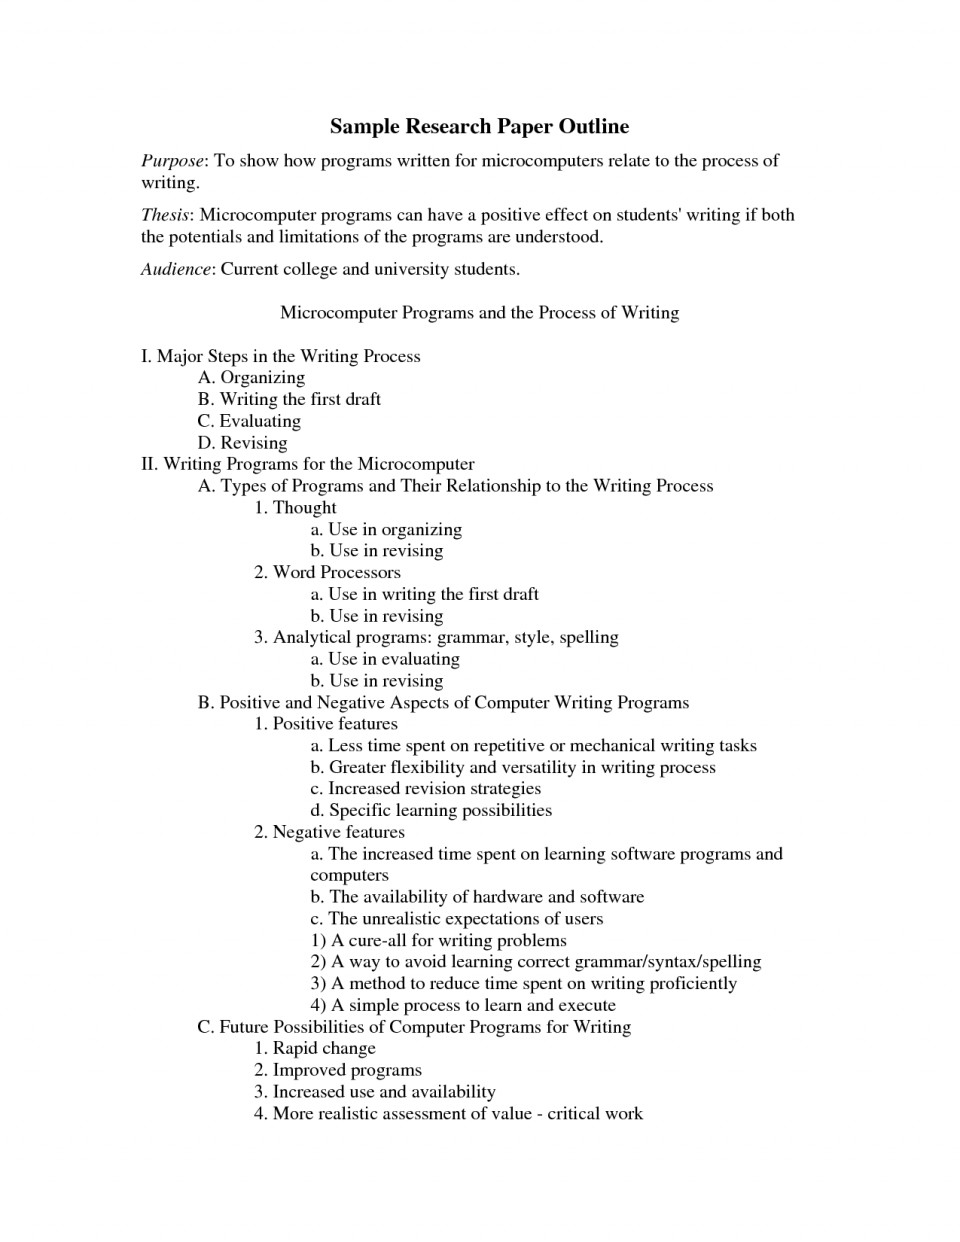 017 College Research Paper Outline Examples 477364 Outlines For Top A Sample Apa Style On Bullying In Schools Writing An 960